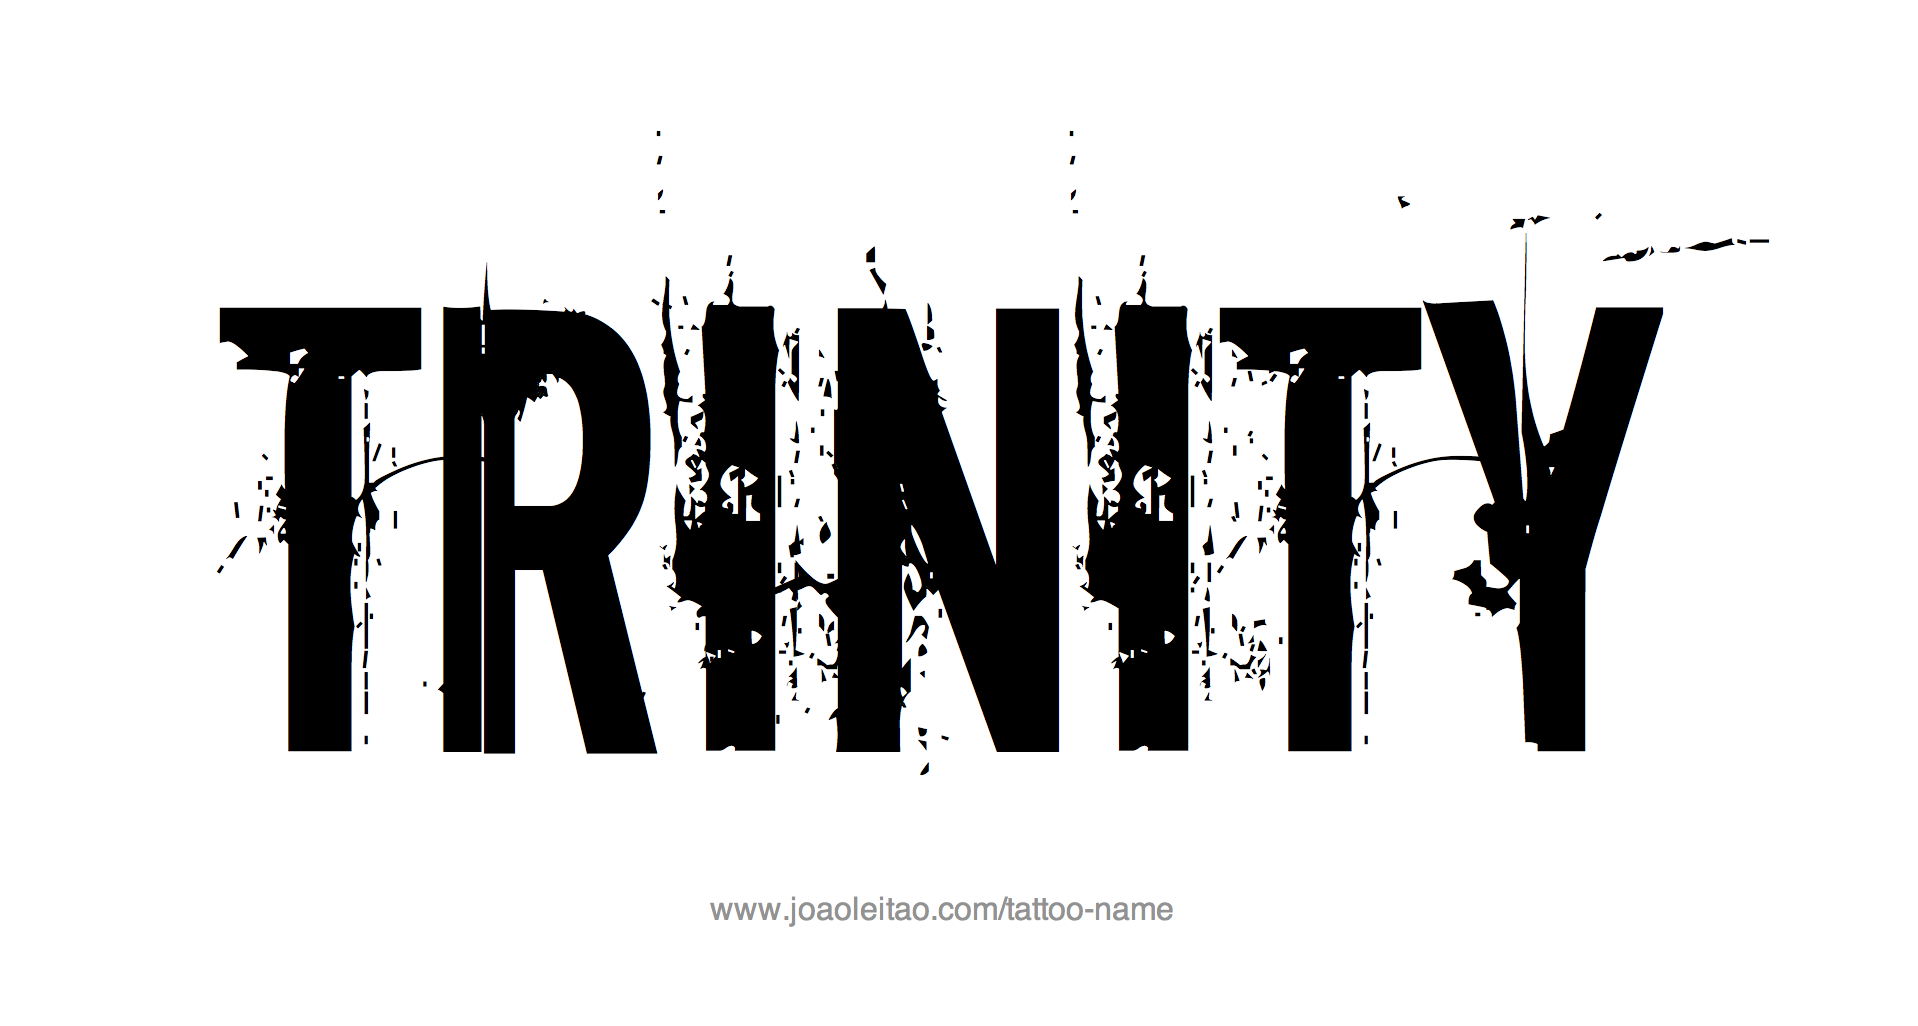 Tattoo Design Name Trinity